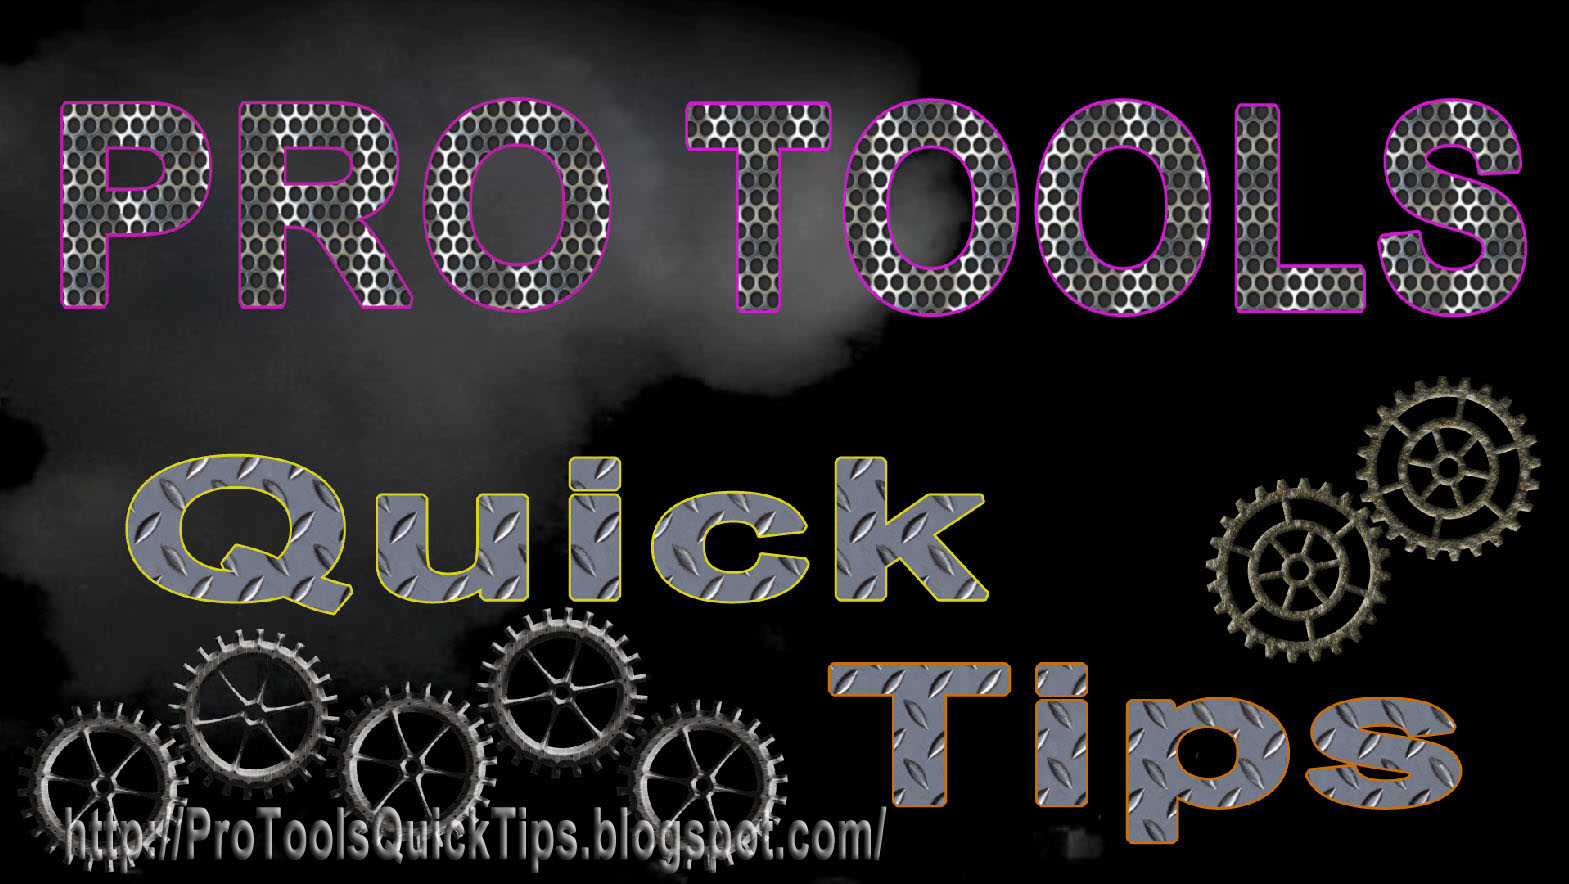 Pro Tools Quick Tips: Run As Administrator When Using Pro Tools on